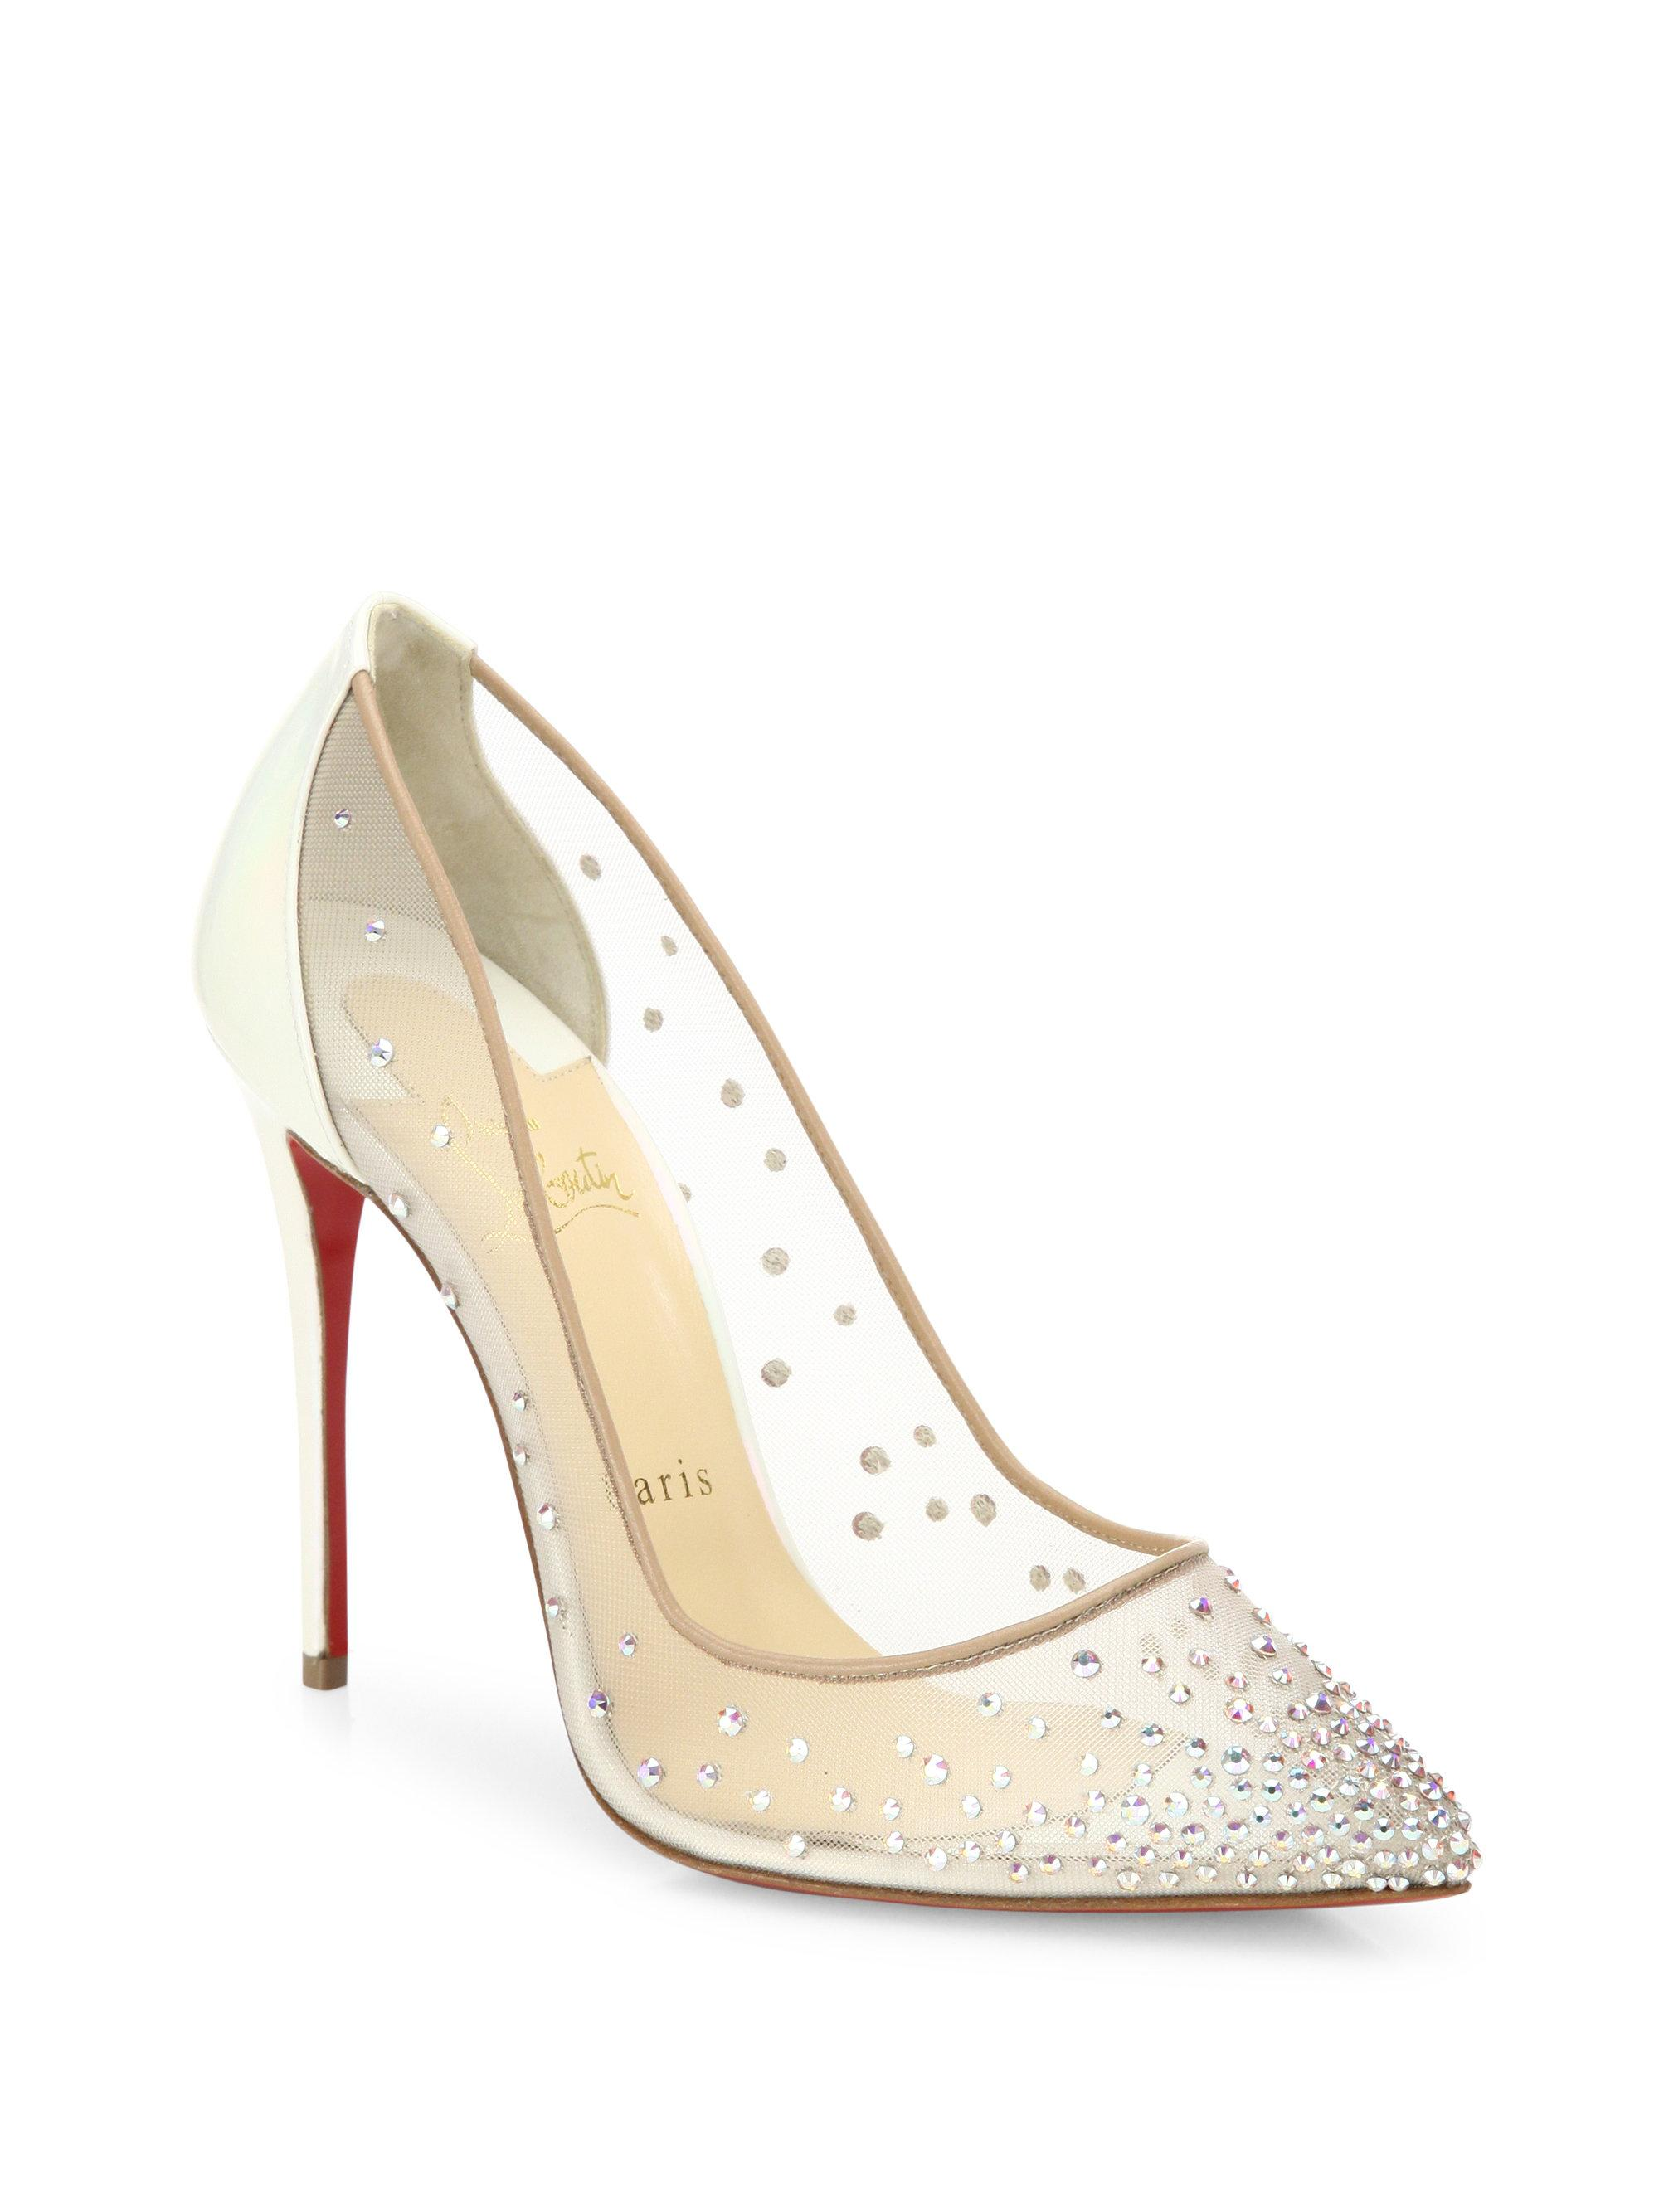 louboutin wedding shoes christian louboutin follies amp mesh point toe pumps 5604